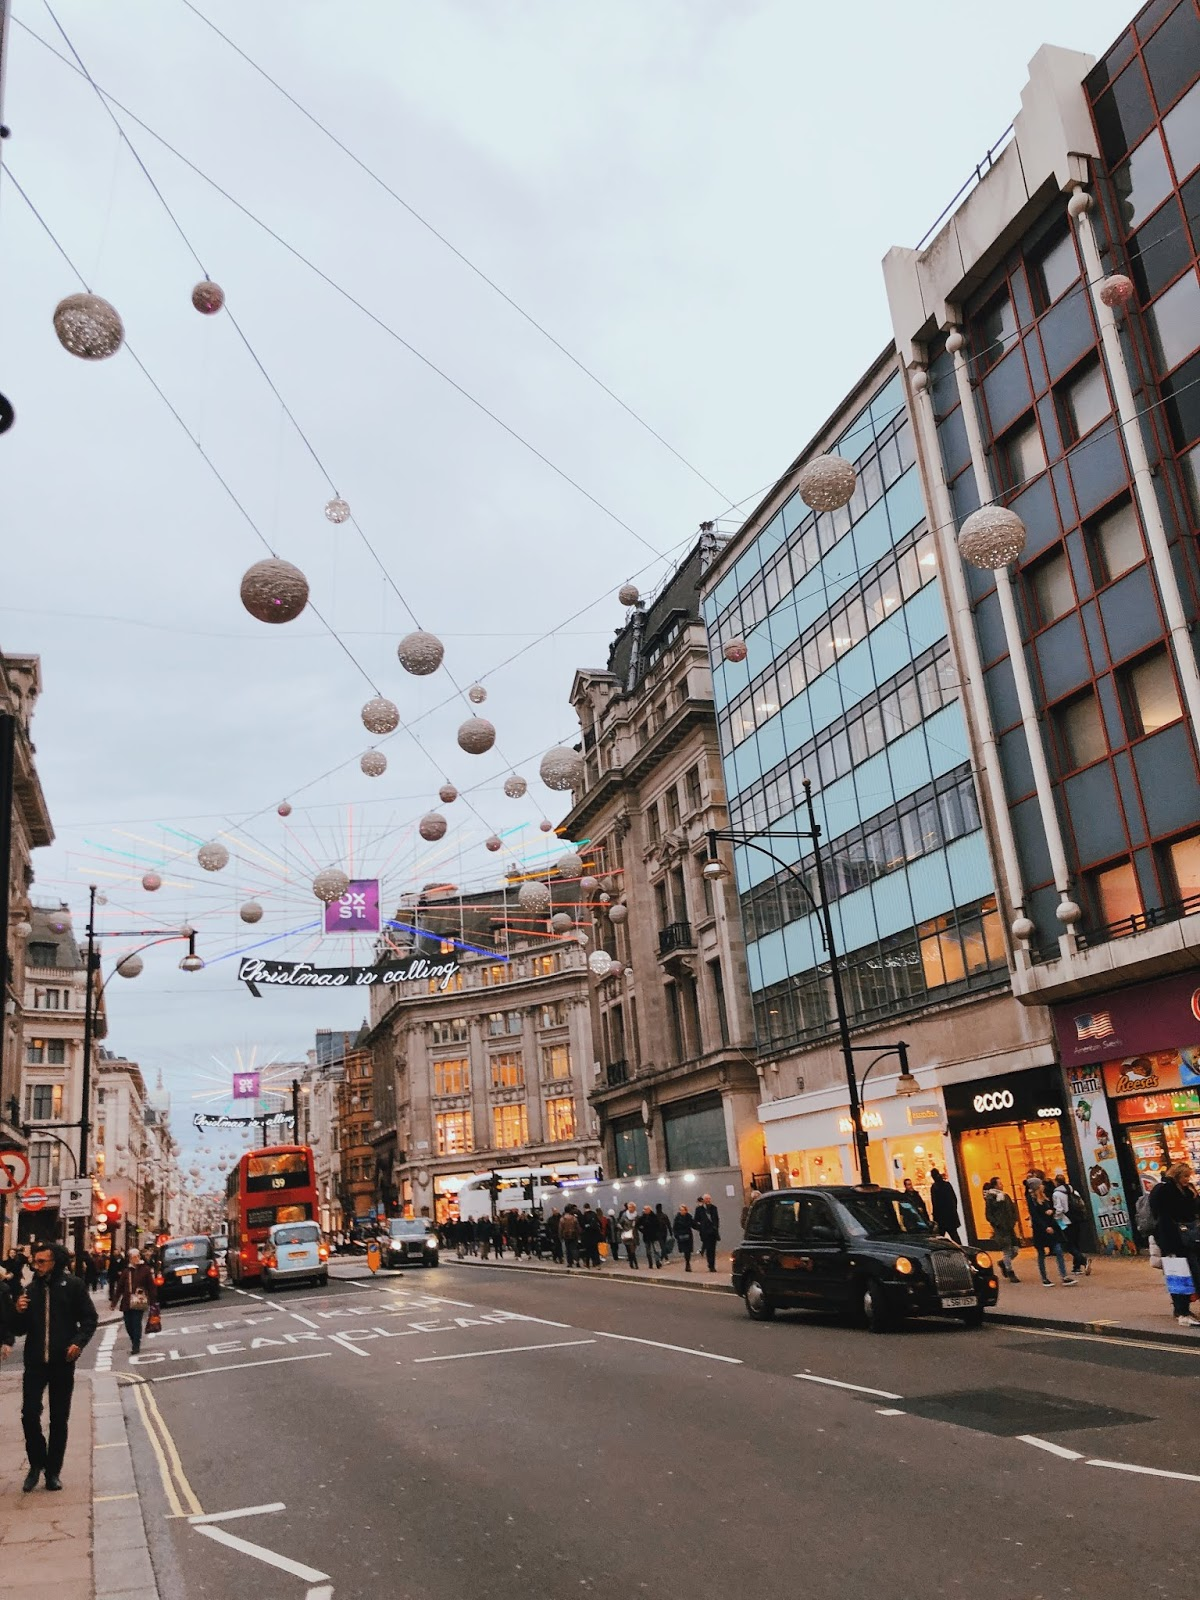 christmas in london, christmas decoration in london, christmas 2018, christmas decoration london 2018, indian blogger, london blogger, oxford street, oxford street london christmas decoration, christmas lights london